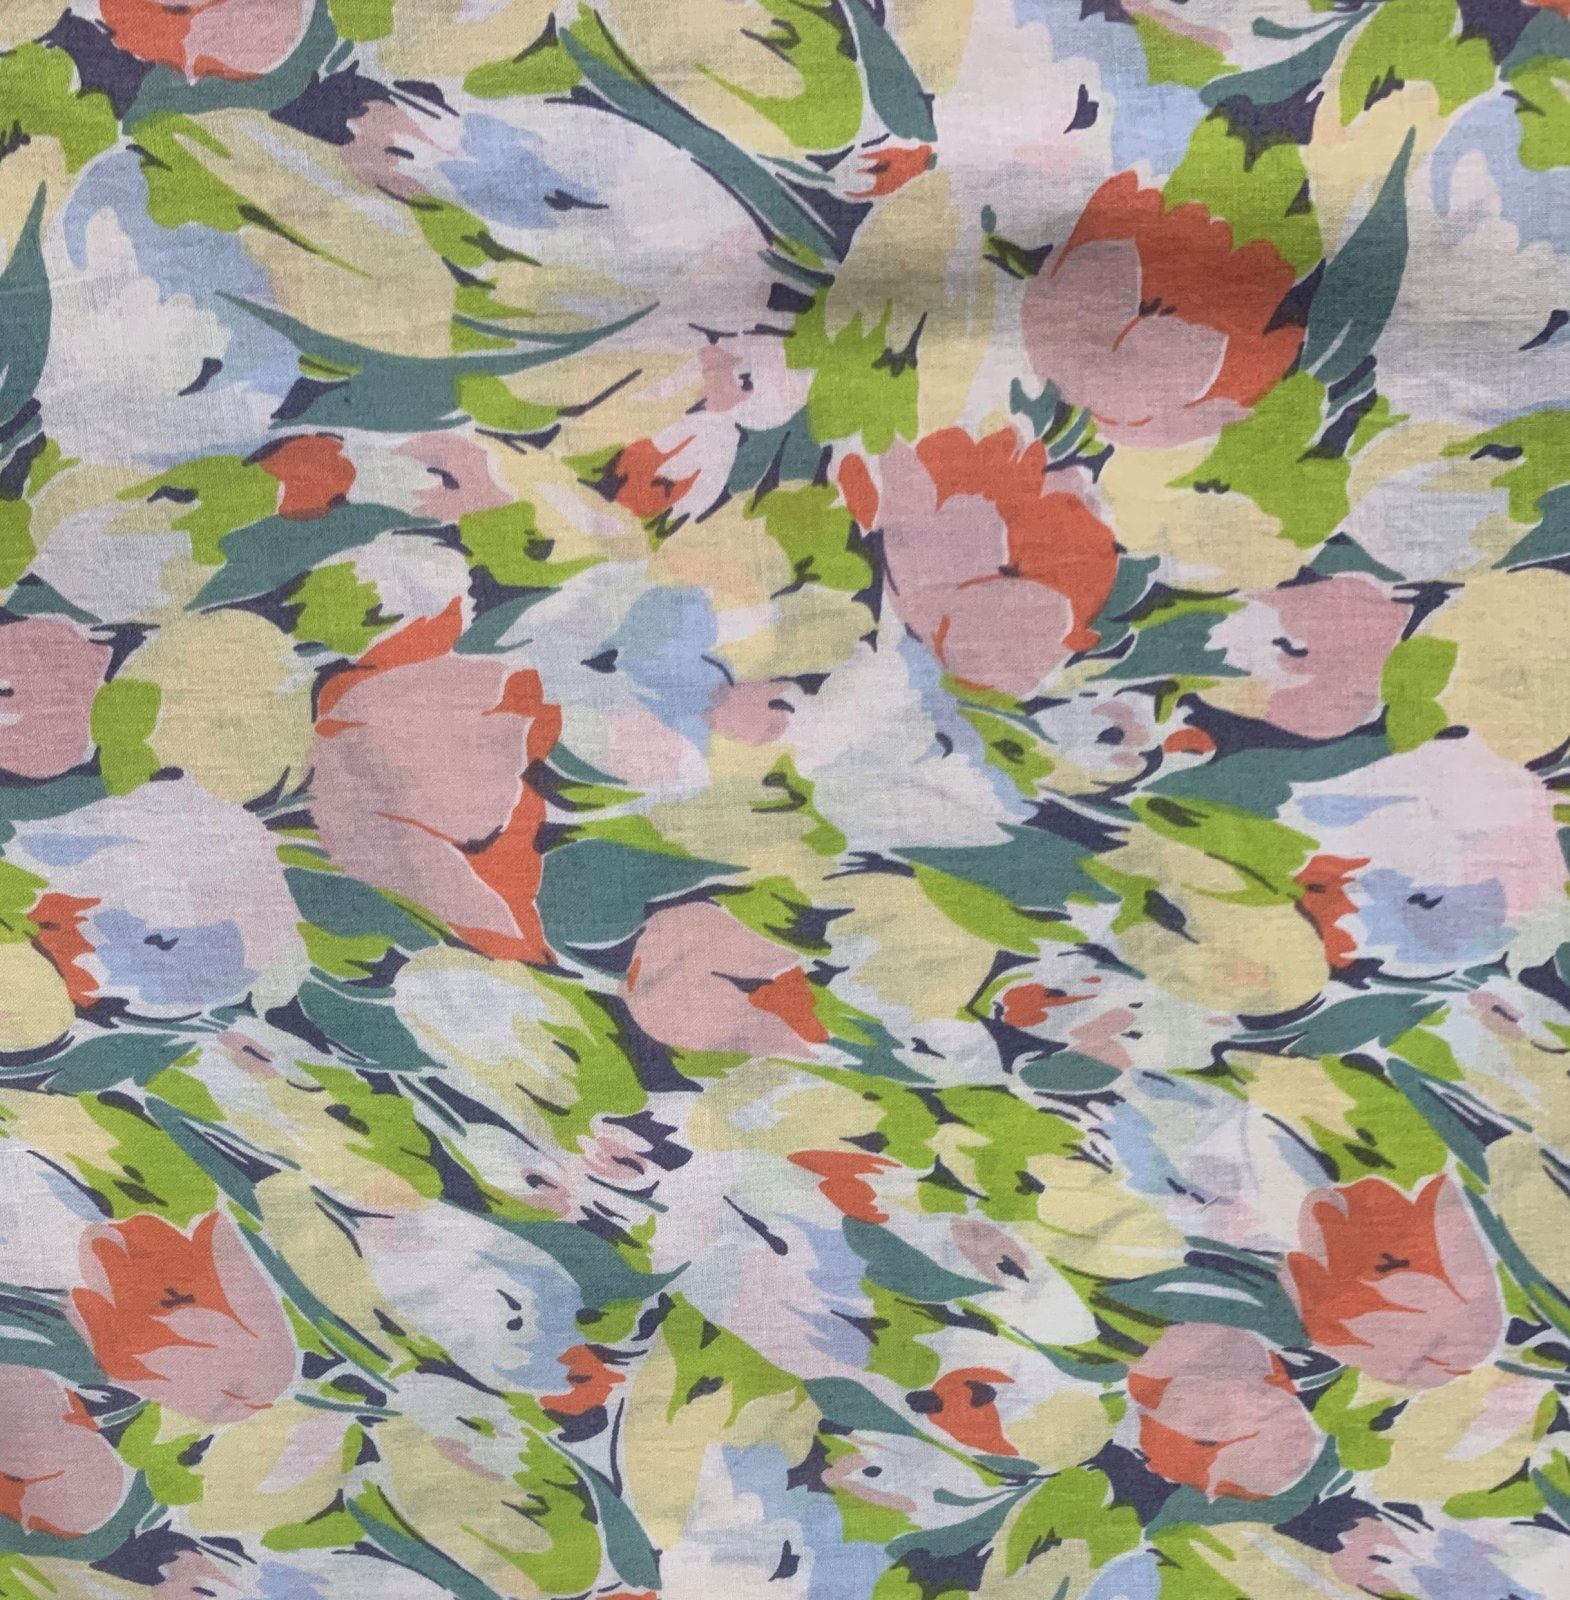 Hokkoh Fabric - Lawn Fabric - Painterly Tulips - Greens, Blues and Pink